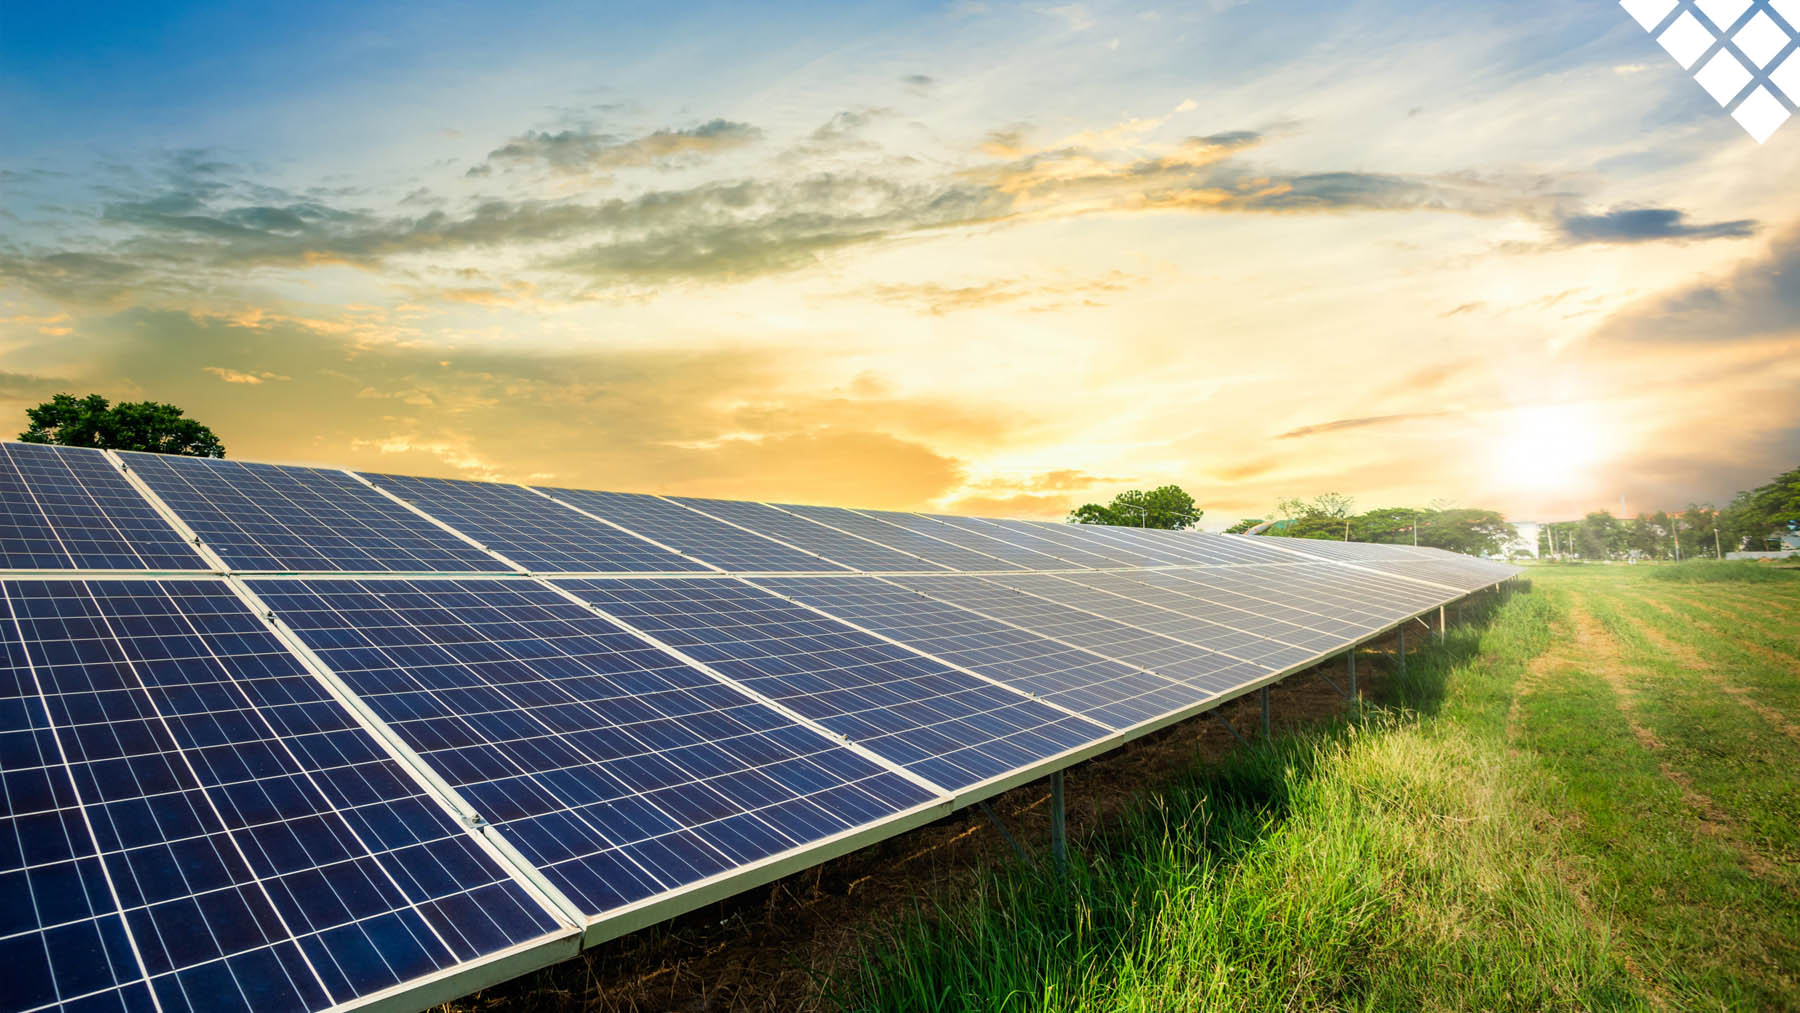 Solar panel cell on dramatic sunset sky background